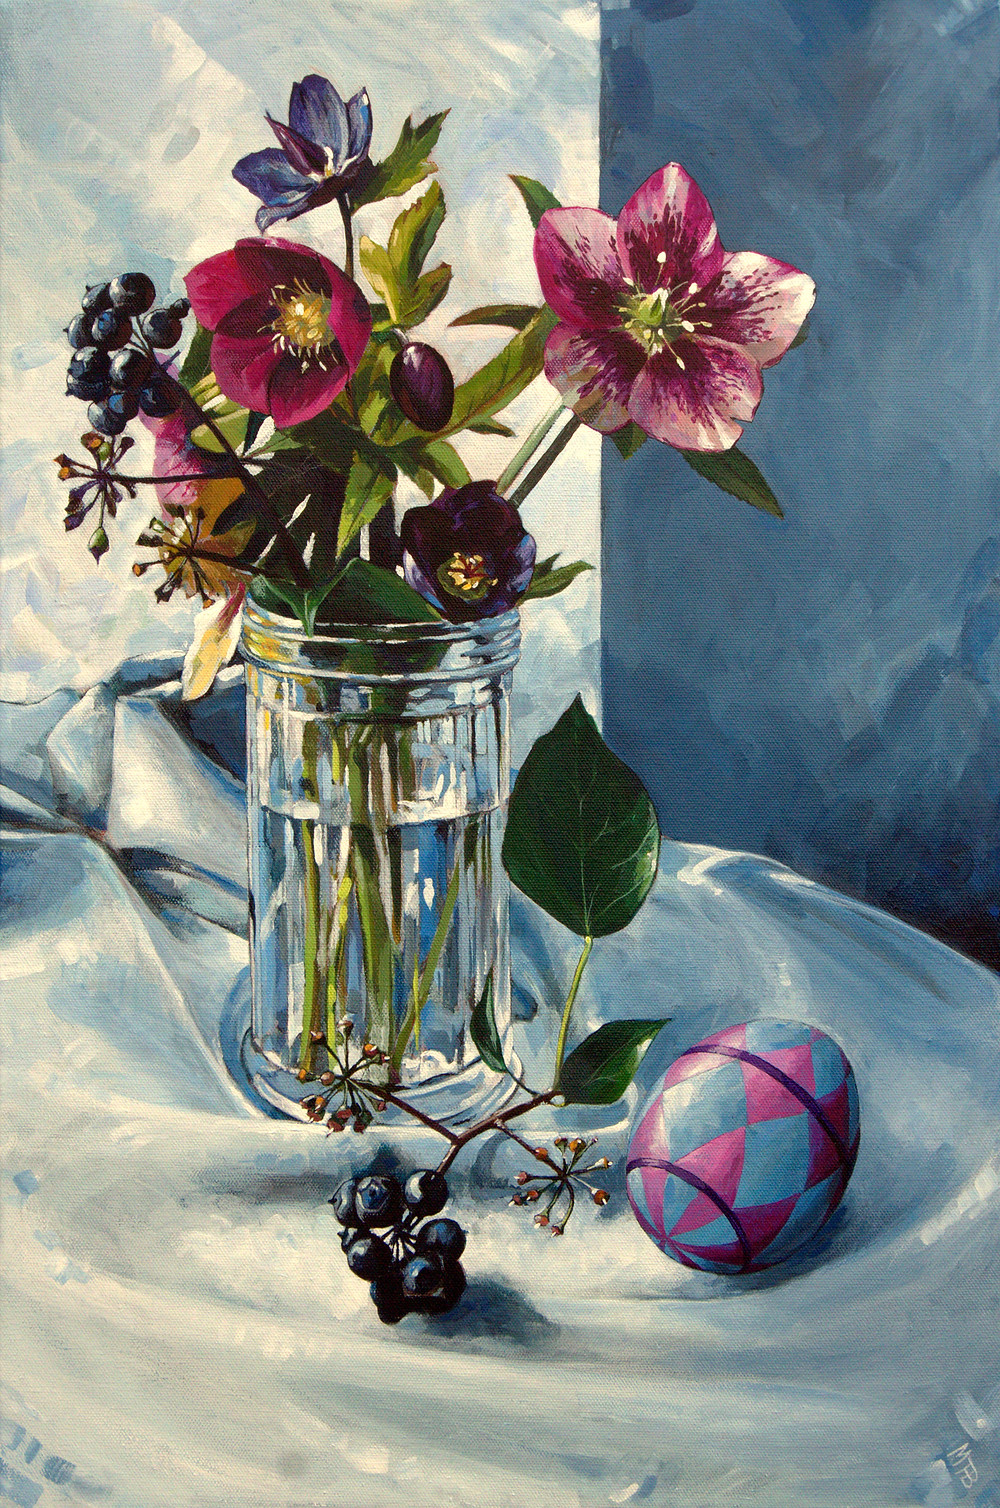 Hellebores, Ivy berries and an egg